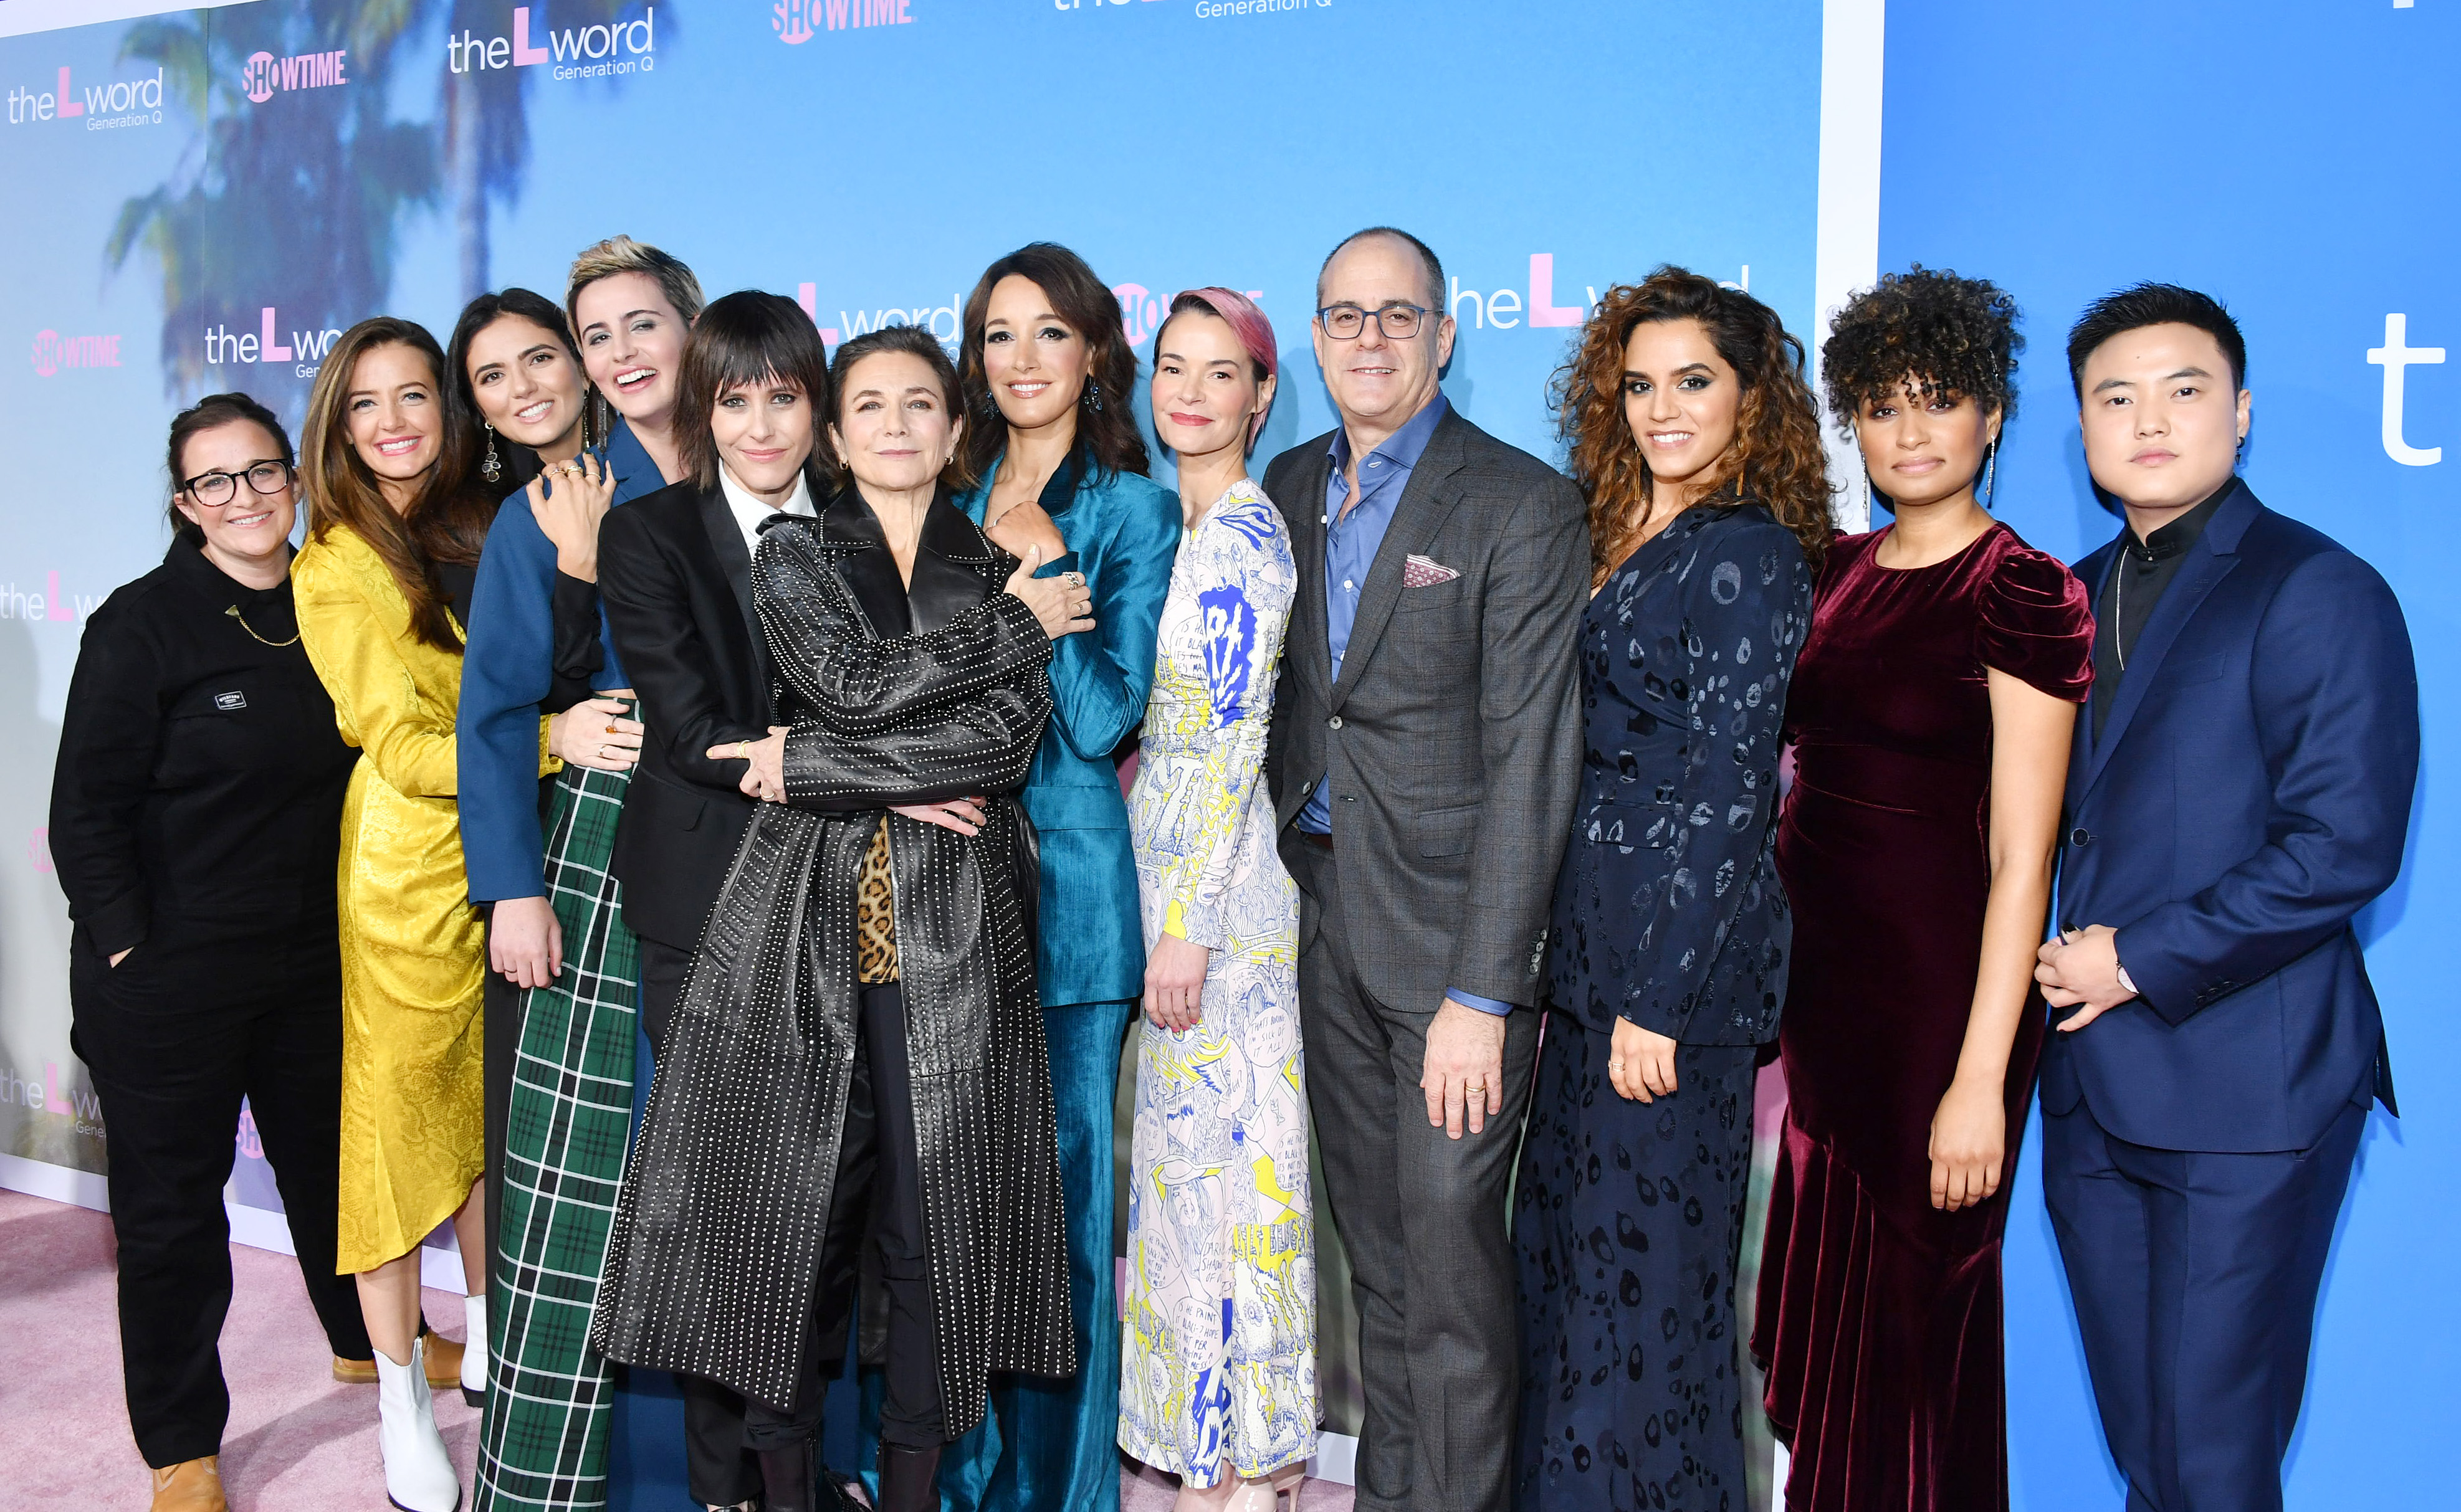 Jennifer Beals, Ilene Chaiken, Leisha Hailey, David Nevins, Stephanie Allynne, Marja-Lewis Ryan, Sepideh Moafi, Rosanny Zayas, Arienne Mandi, Jacqueline Toboni, and Leo Sheng at an event for The L Word: Generation Q (2019)